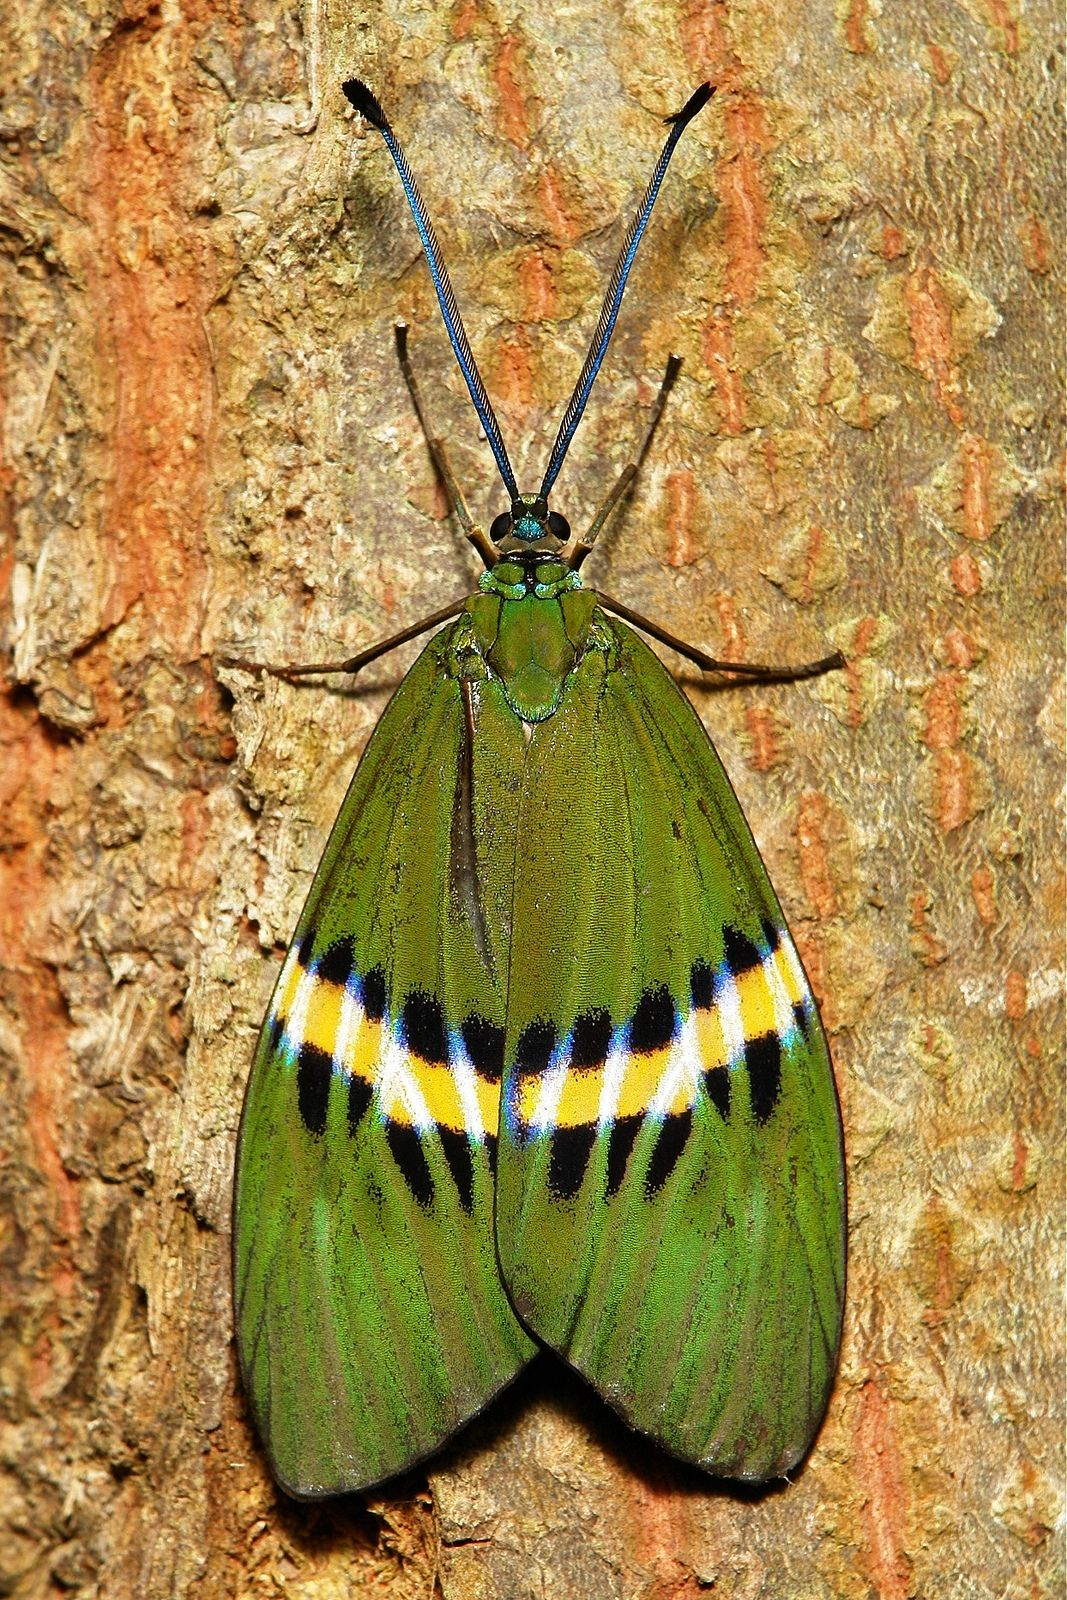 Chalcosiine Day Flying Moth Eterusia Repleta Chalcosiinae Zygaenidae Schone Schmetterlinge Schmetterling Libellen